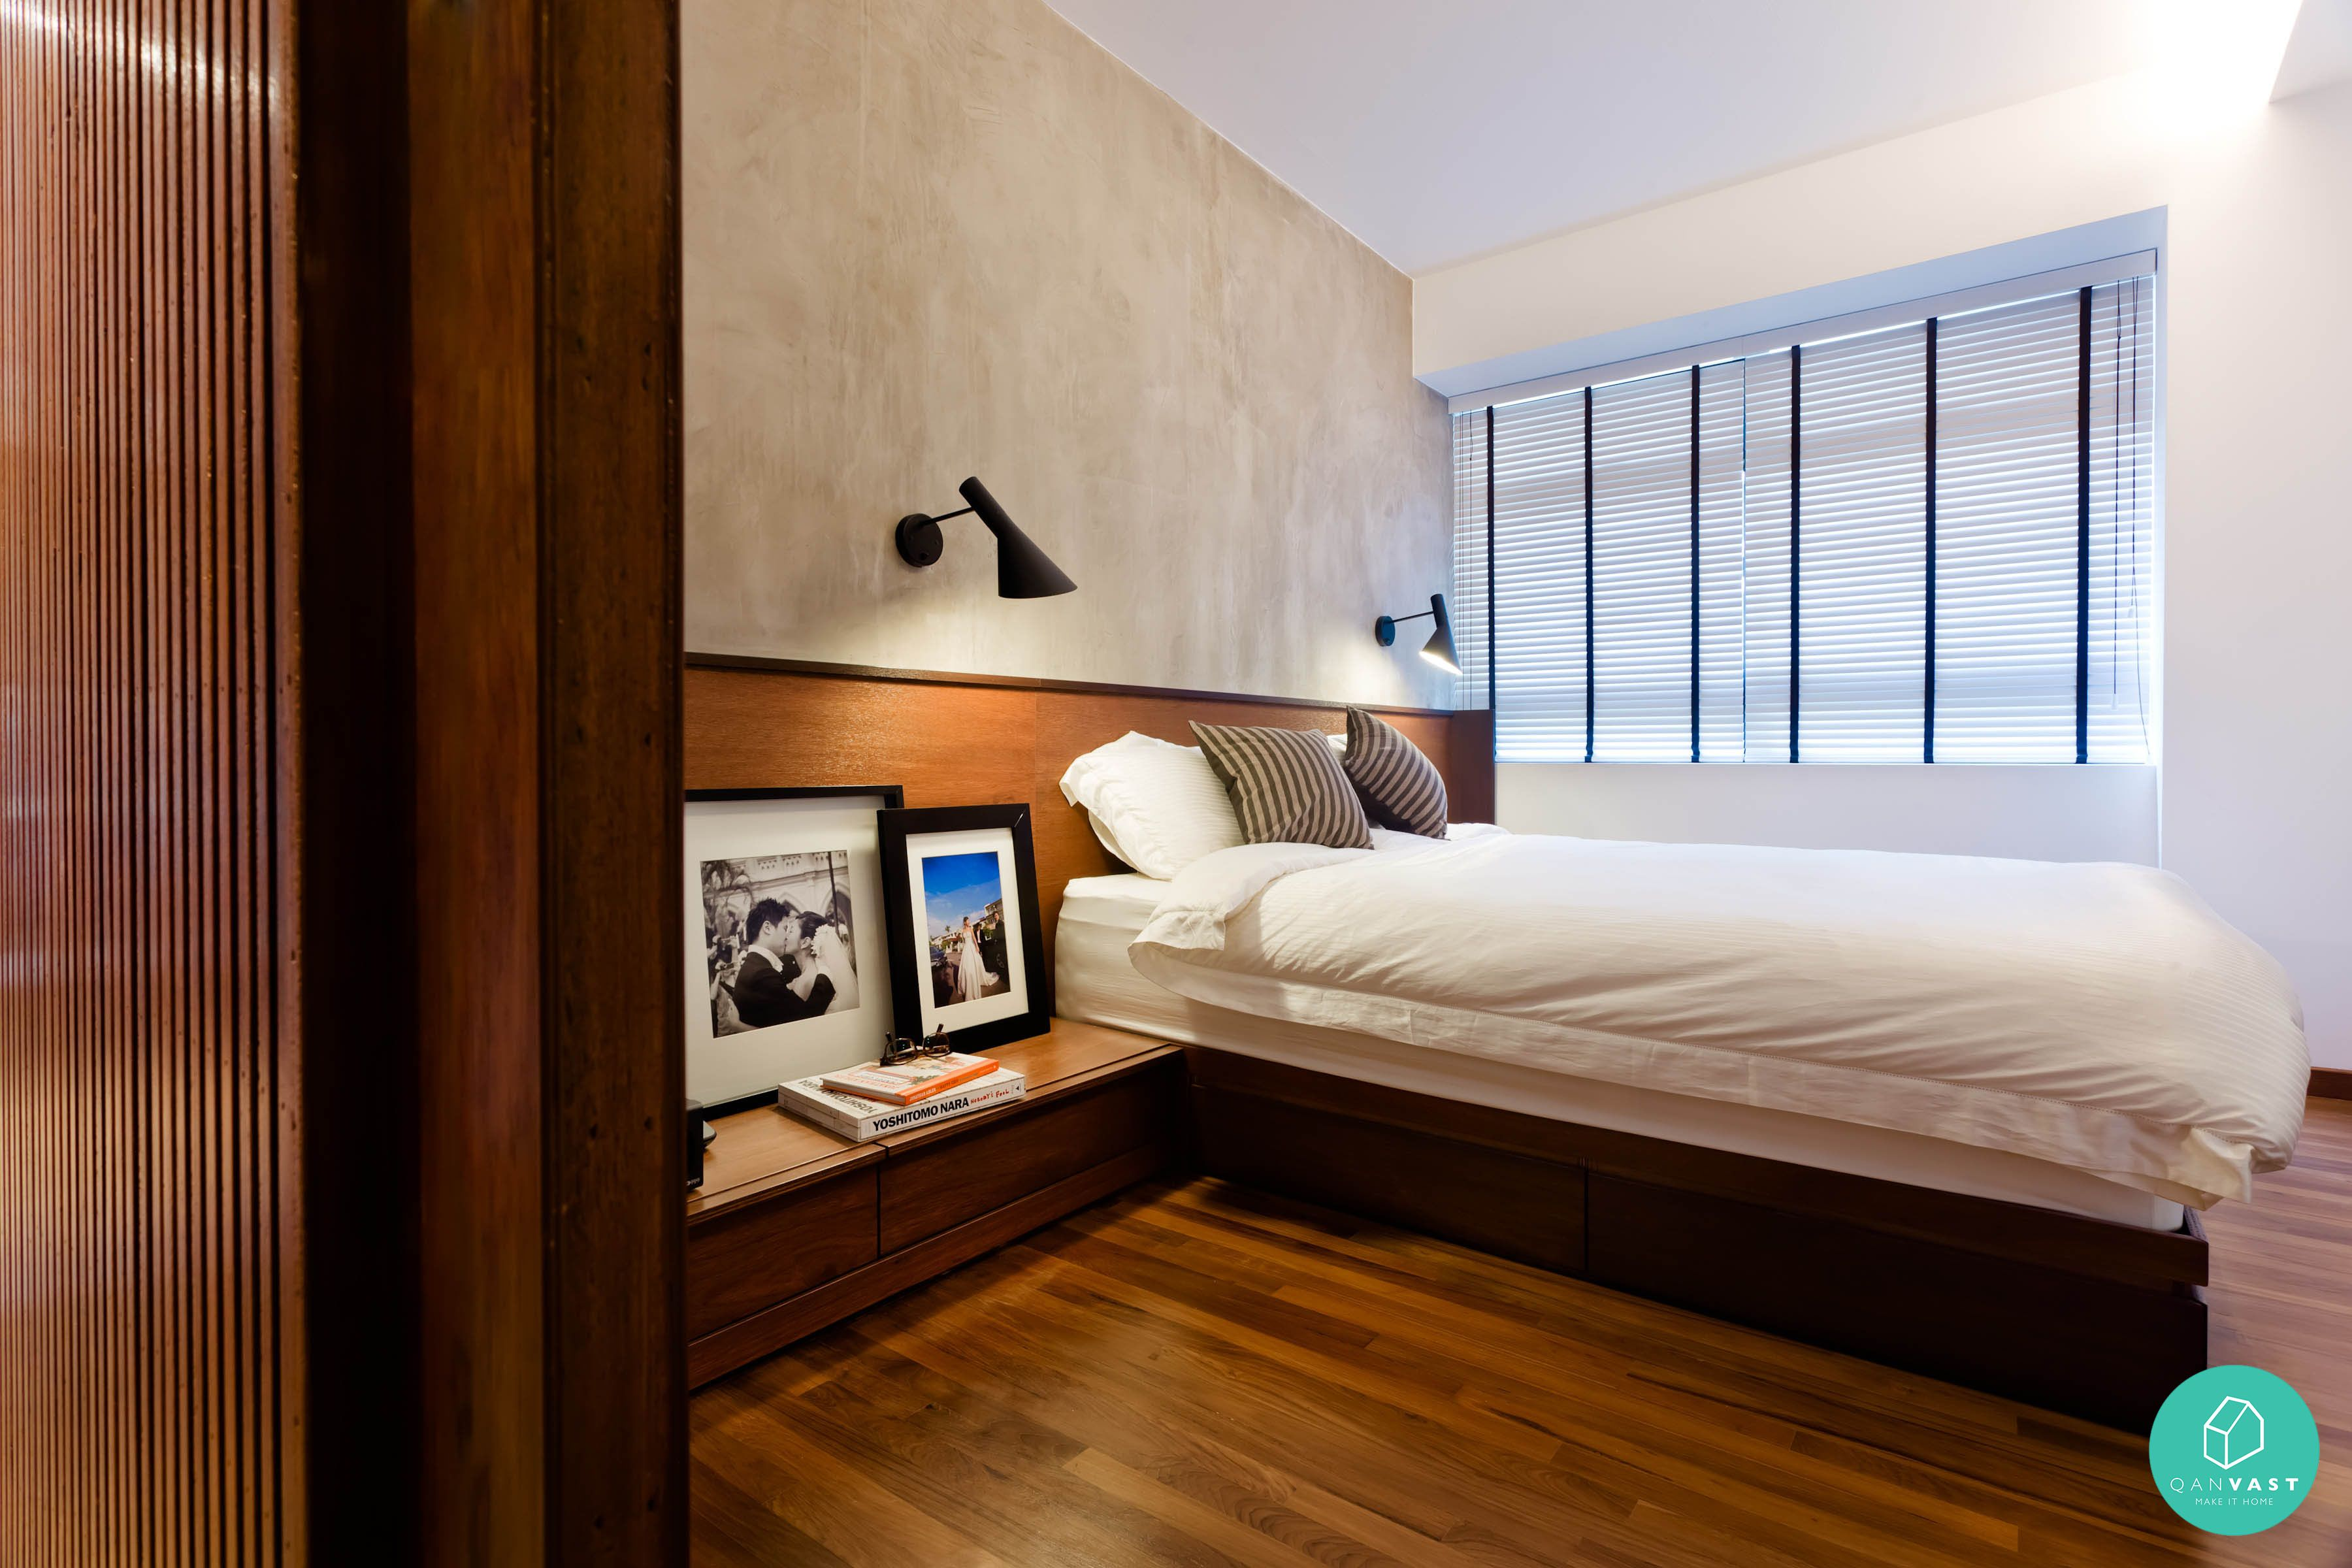 Scandustrial theme 6 homes that achieved this look bedrooms industrial and wall beds Master bedroom reno ideas